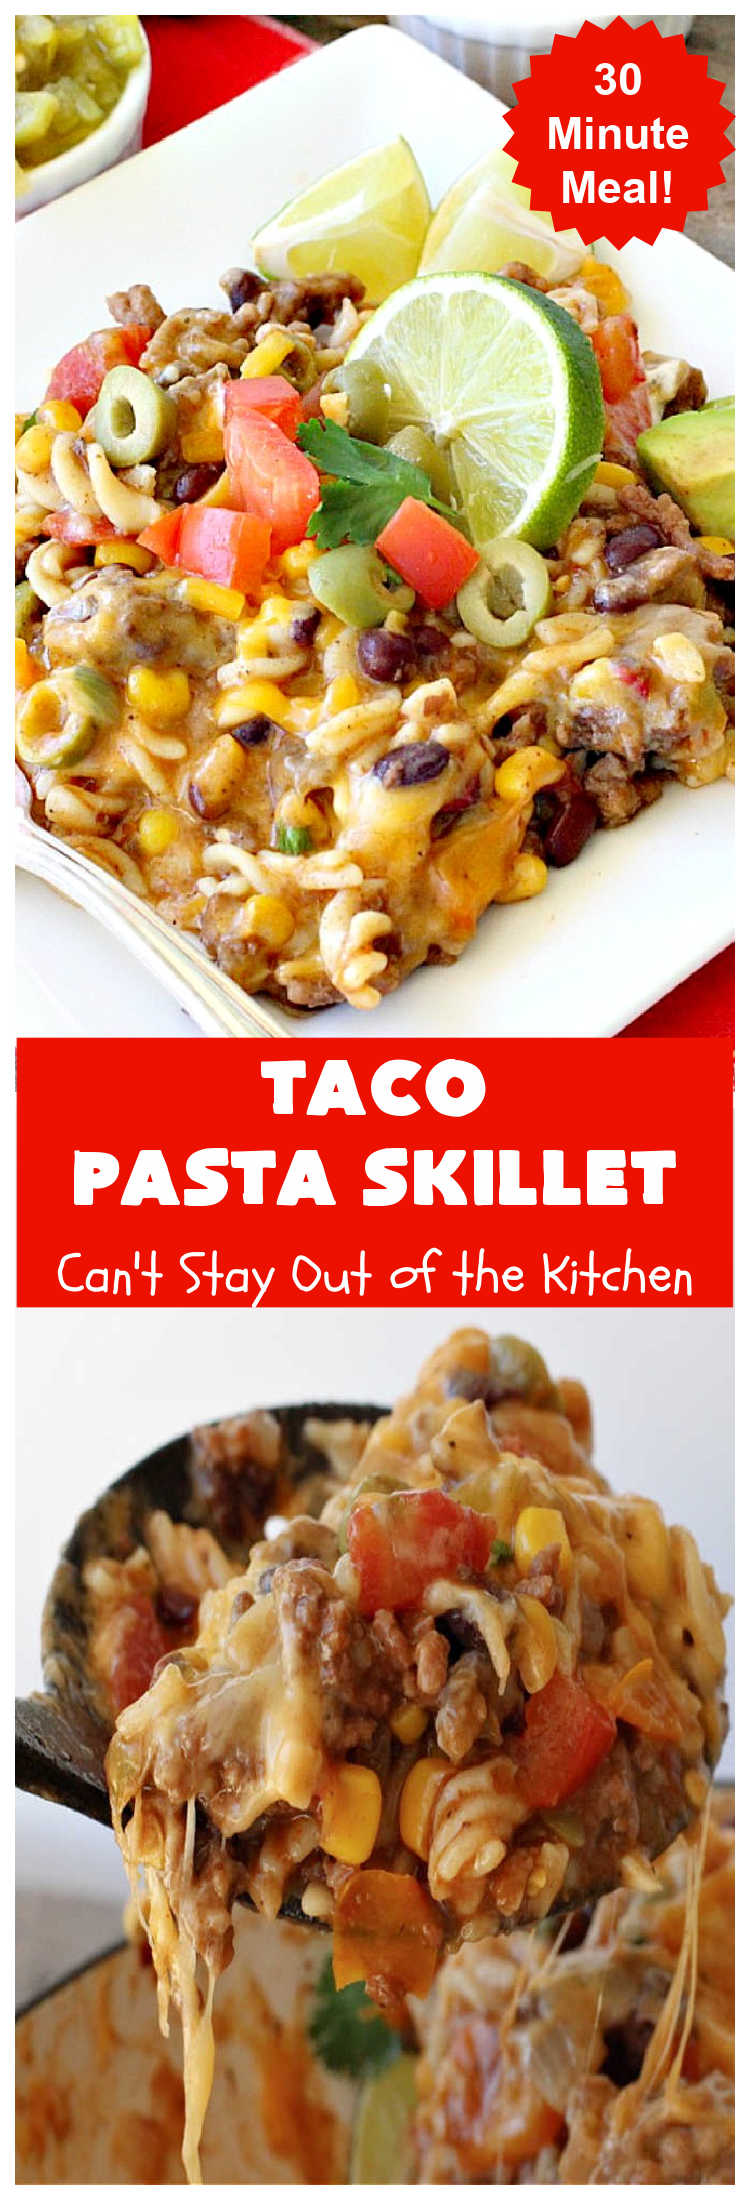 30-Minute Taco Pasta Skillet | Can't Stay Out of the Kitchen | This delicious #TexMex #beef entree includes #GlutenFree #pasta, #beans & corn and can be made in about 30 minutes. The toppings make this dish fabulous. It's great for weeknight dinners! #avocados #tomatoes #olives #cheese #TacoPastaSkillet #30MinuteMeal